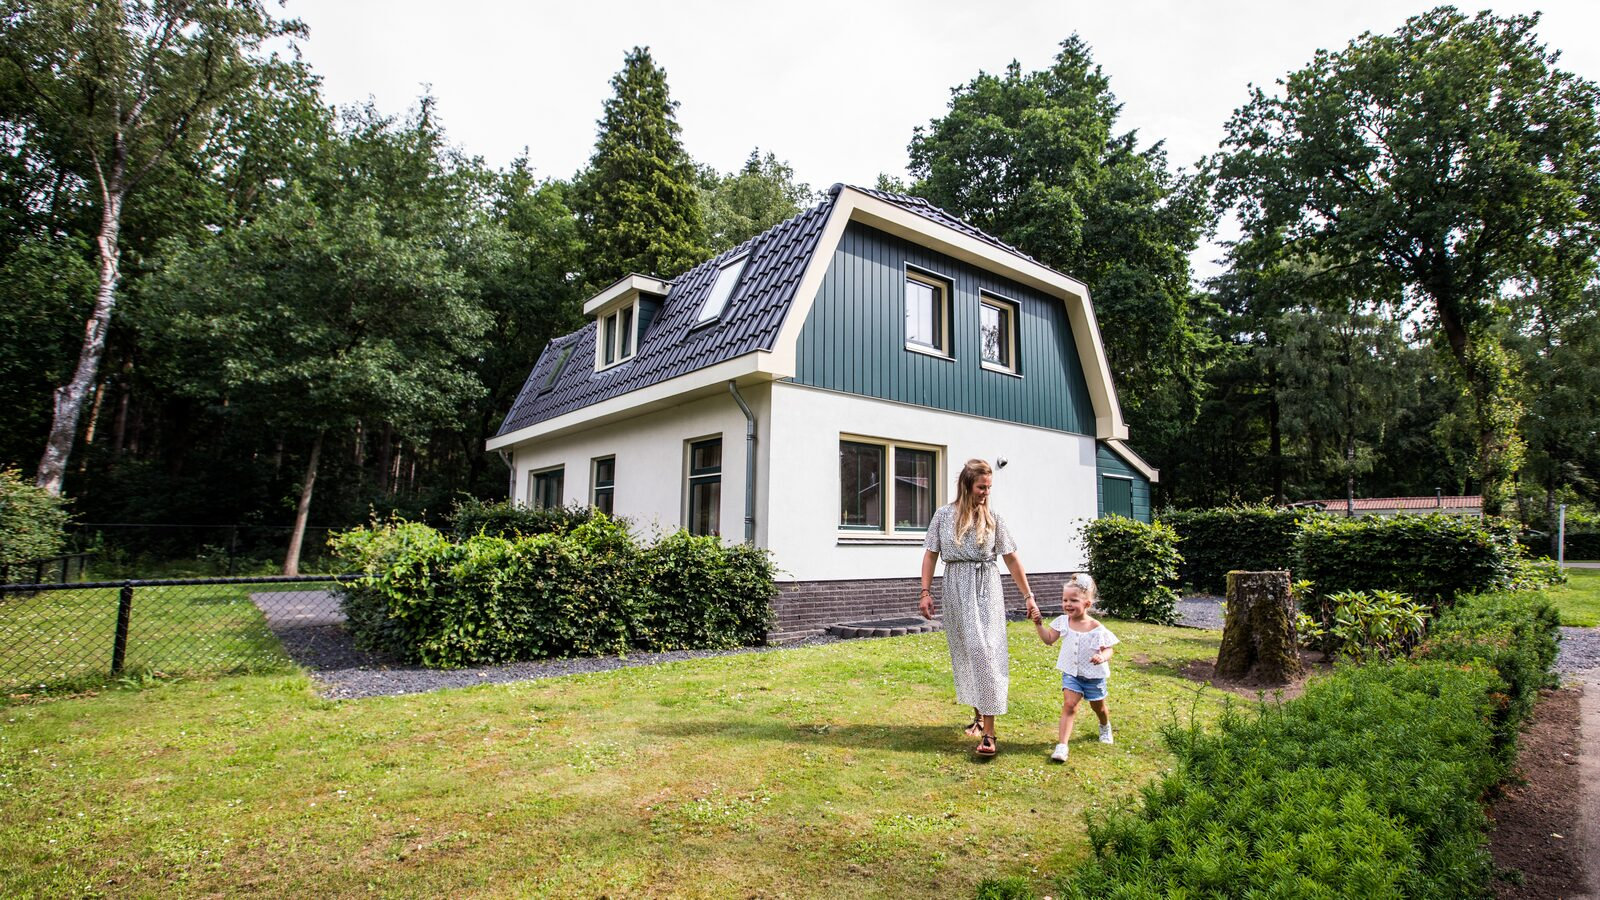 Holiday homes for sale at Forest park Ede